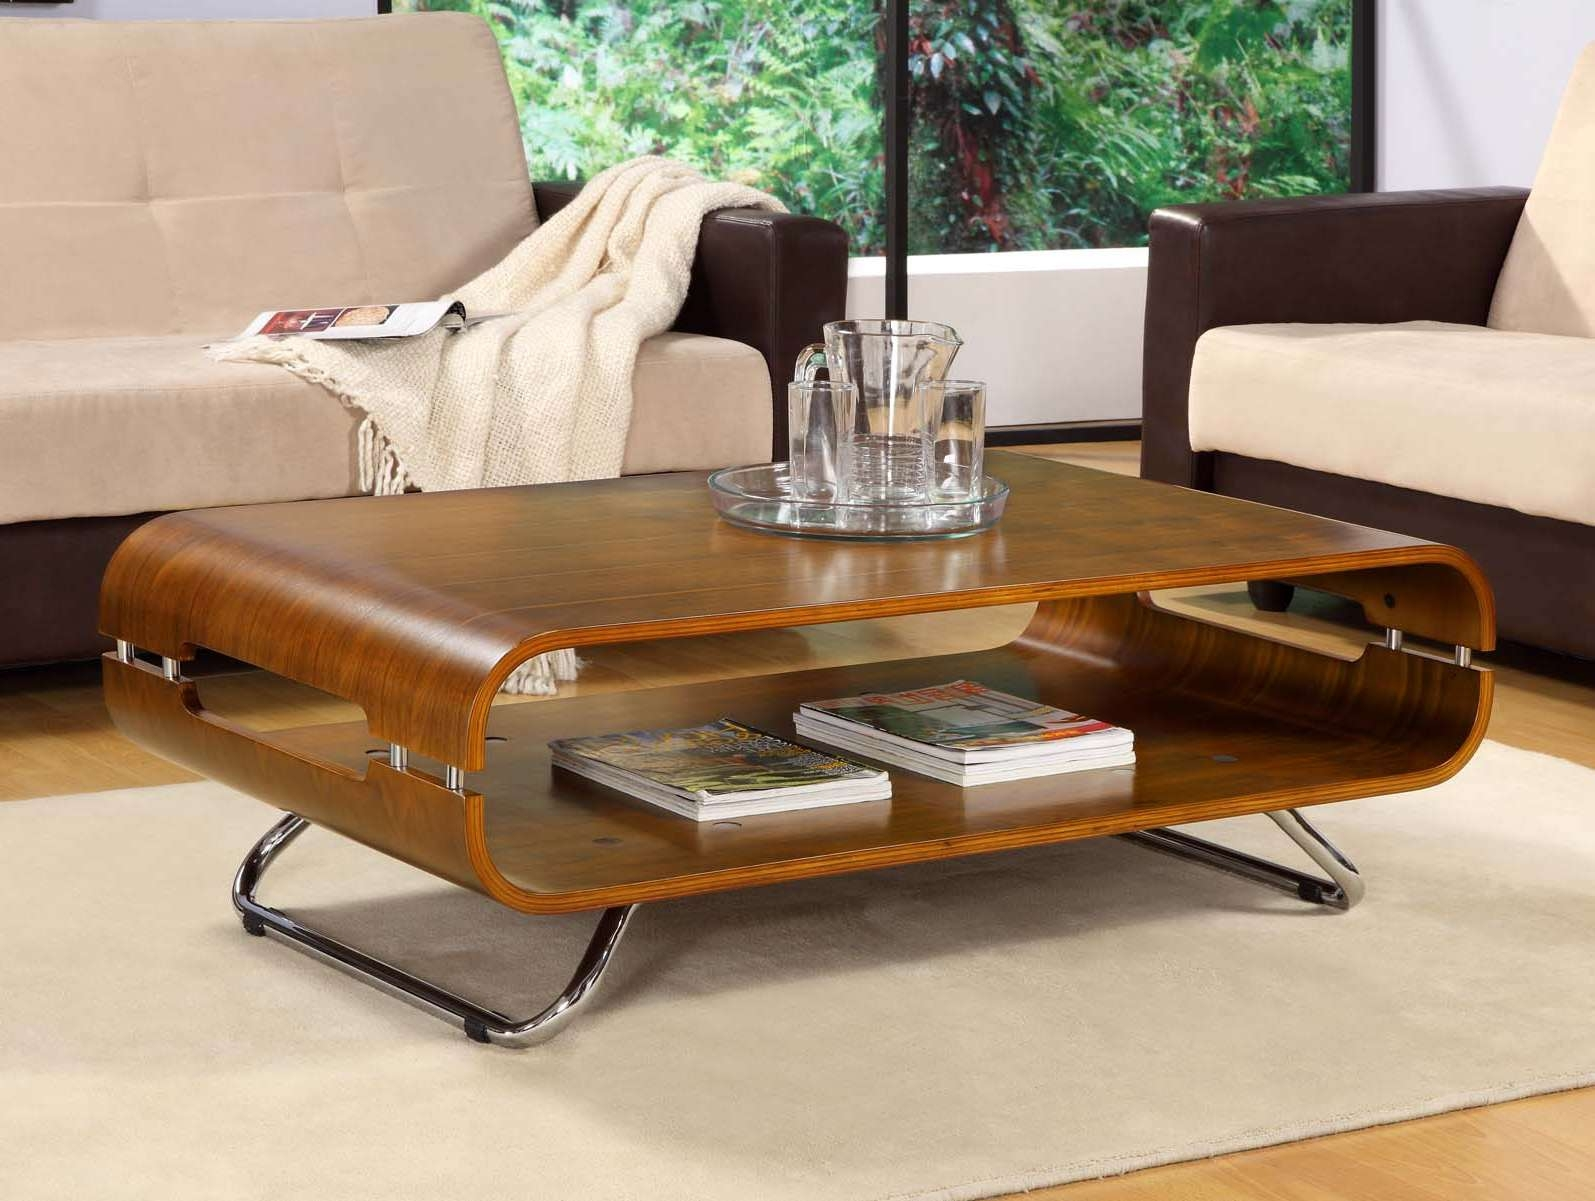 Newest Curve Coffee Tables With Jual Curve 2 Level Coffee Table – Home & Office Desks Uk & Ireland (View 10 of 20)